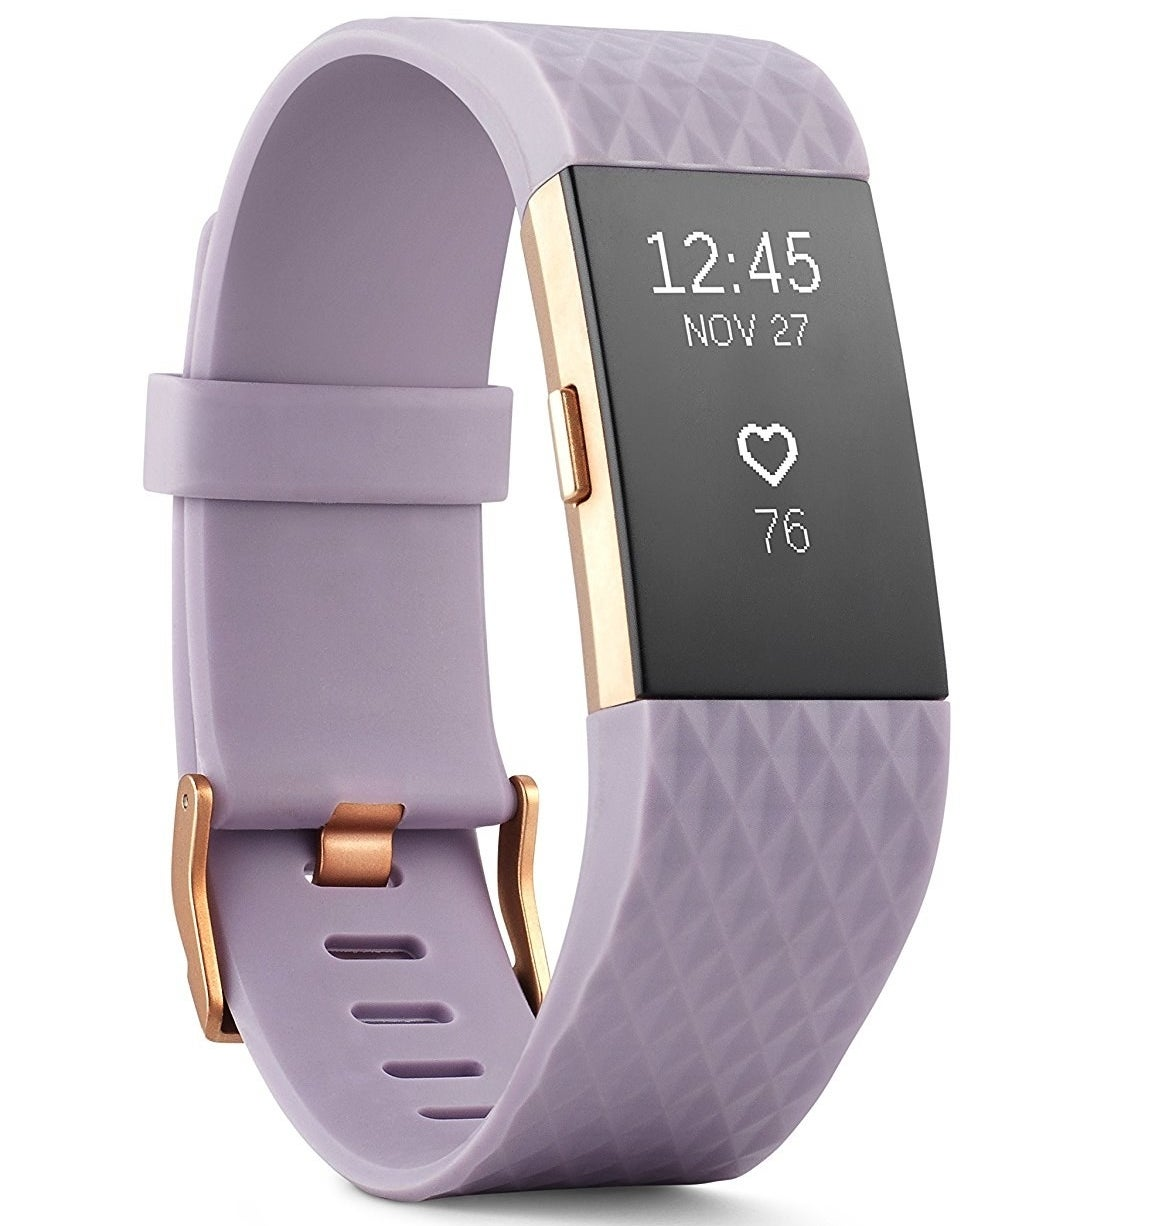 "Promising review: ""My husband and I each got one of these and they are our first fitness trackers. They are really motivating us to lose weight and stay active. The app is very easy to use, even for people who are technology challenged as we are. We really enjoy the challenges because they make our weight loss/exercise routine much more fun. We especially like the food log which makes us more aware of what we are actually eating all day. We couldn't be happier with our purchases."" —Janet V.Price: $119.95+ (available in six colors and four sizes)"